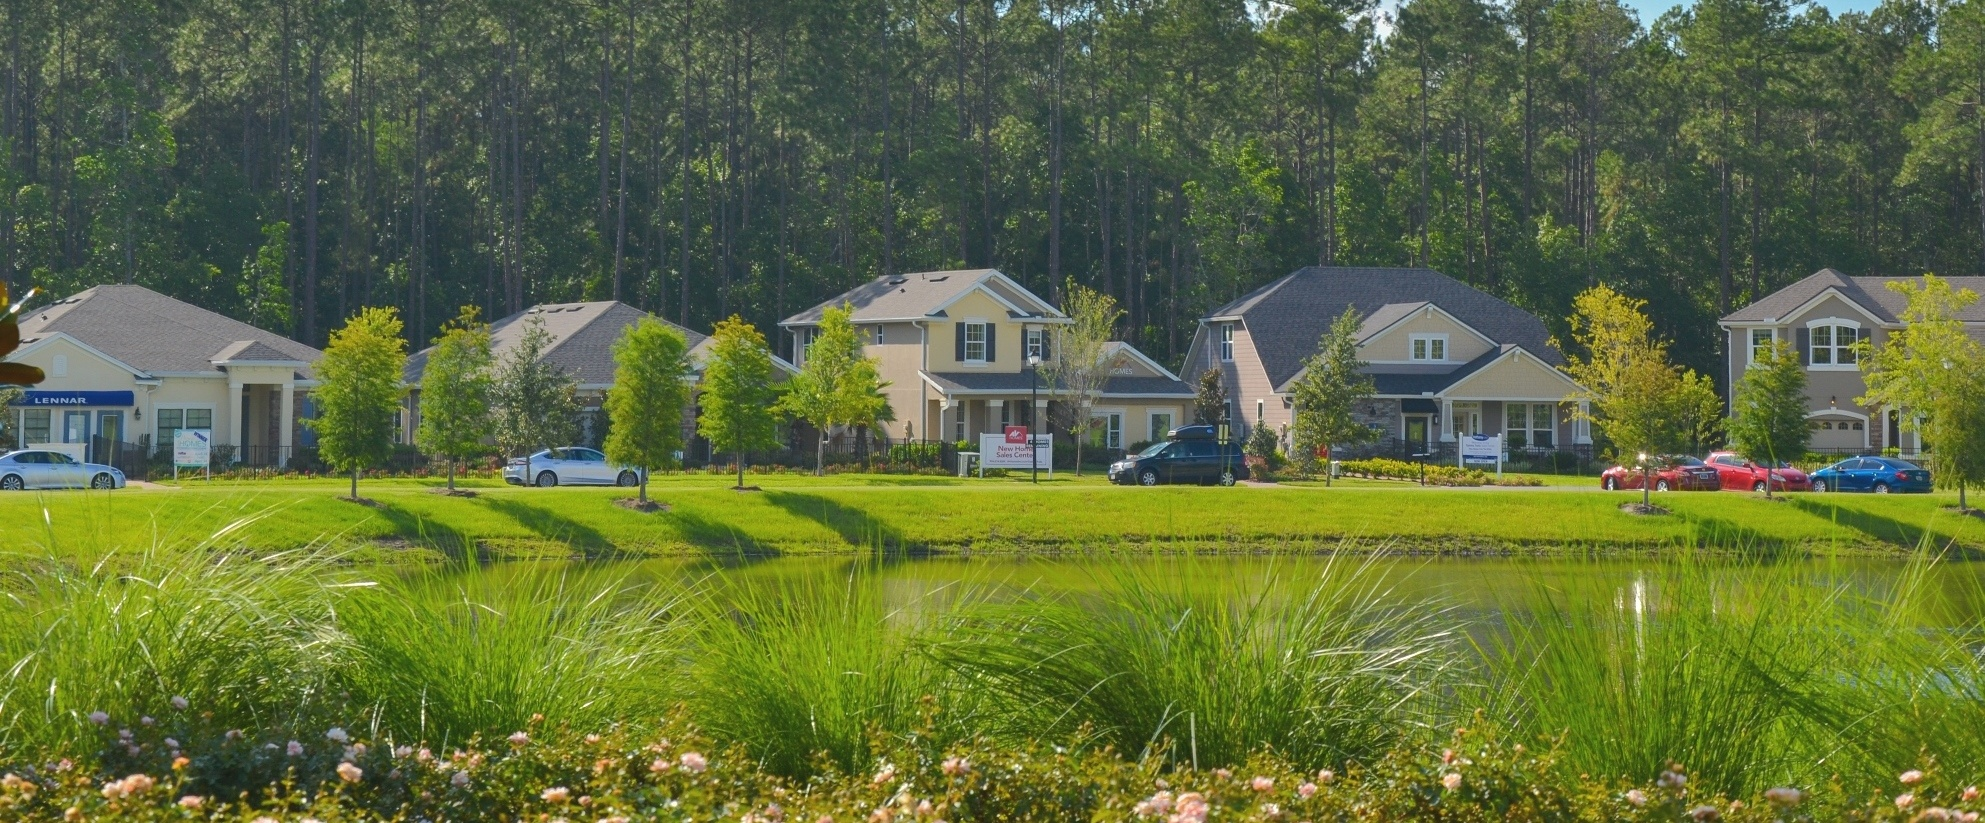 Cypress Trails Model Home Park